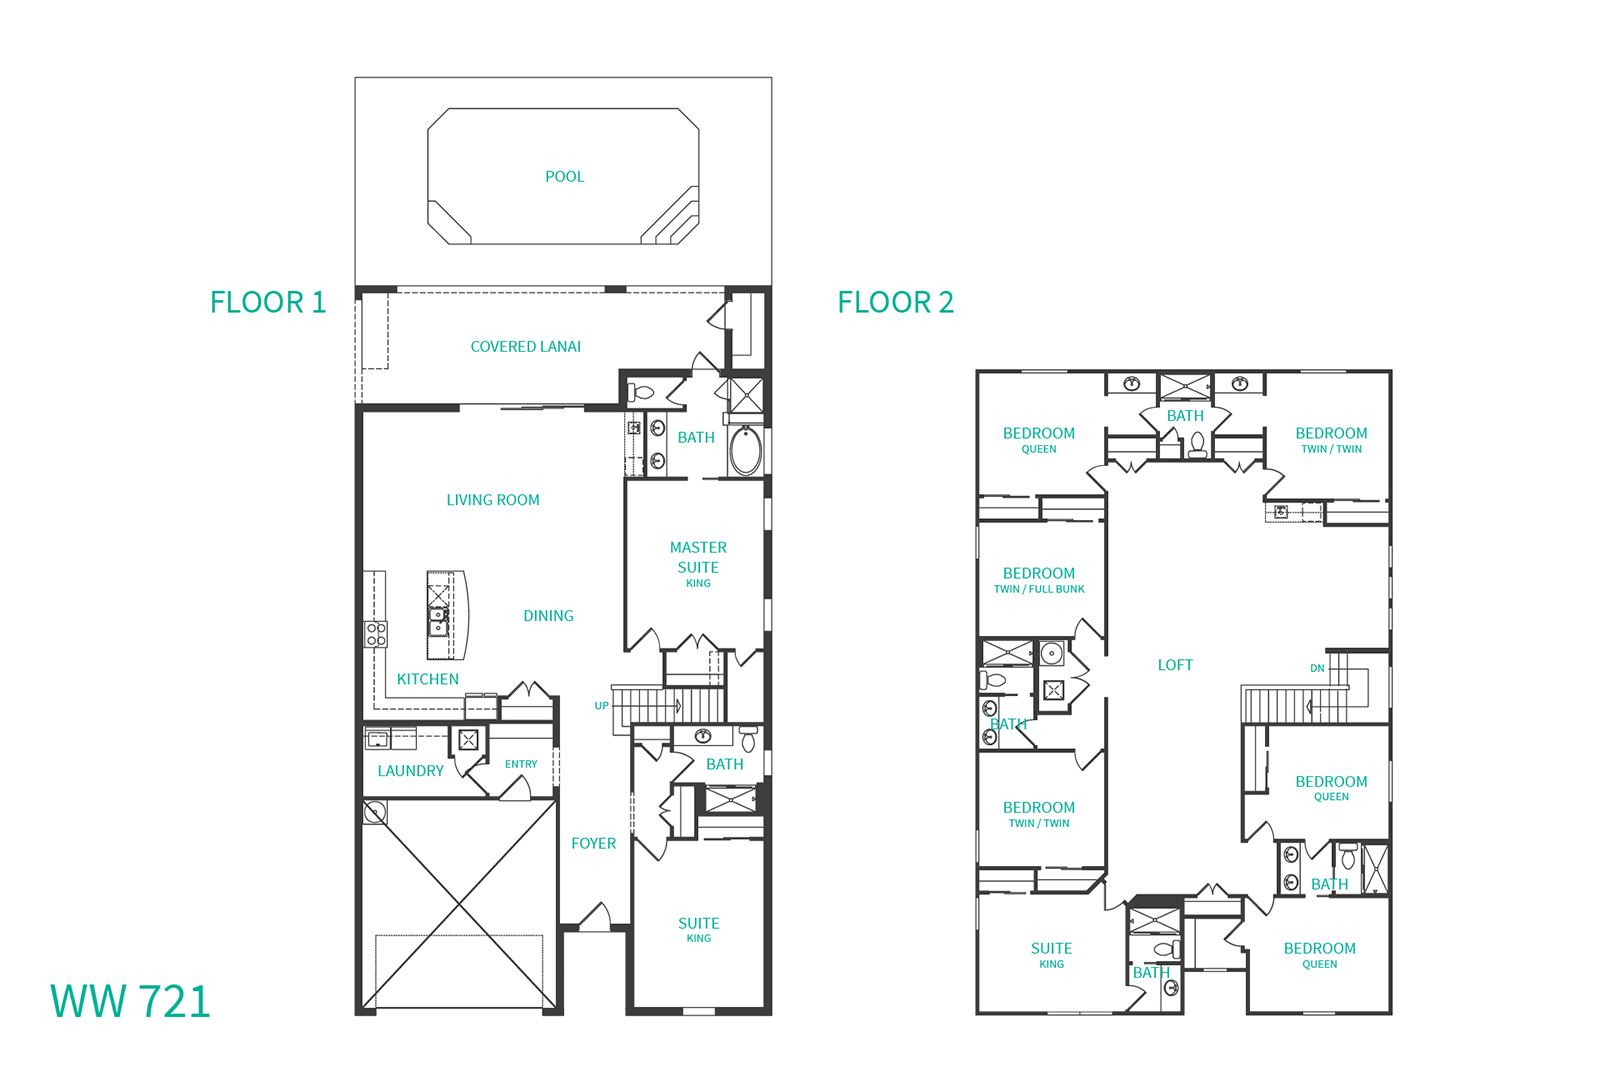 Floor Plan for Westside Star | Windsor at Westside Resort |9 bedrooms - 6 bathrooms